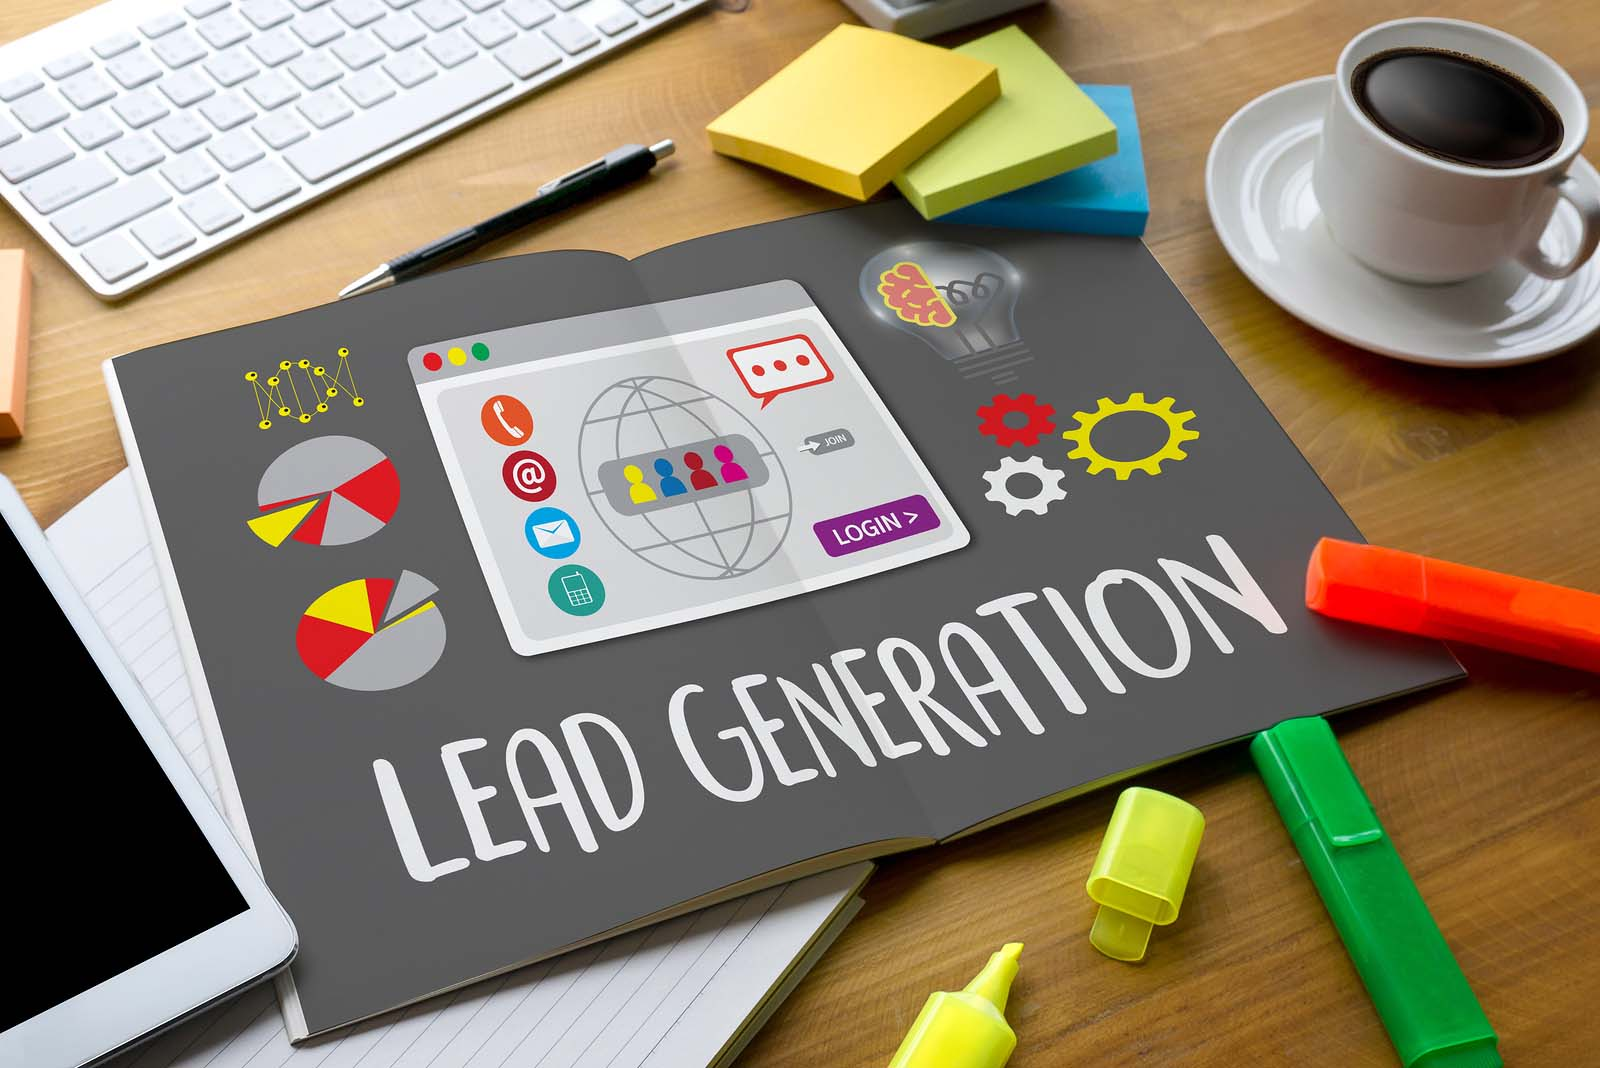 LEAD GENERATION Lead Generation Business Funnel Sales funnel marketing process Lead generation lead generation internet marketing for online market Lead Generation Interest Marketing Business